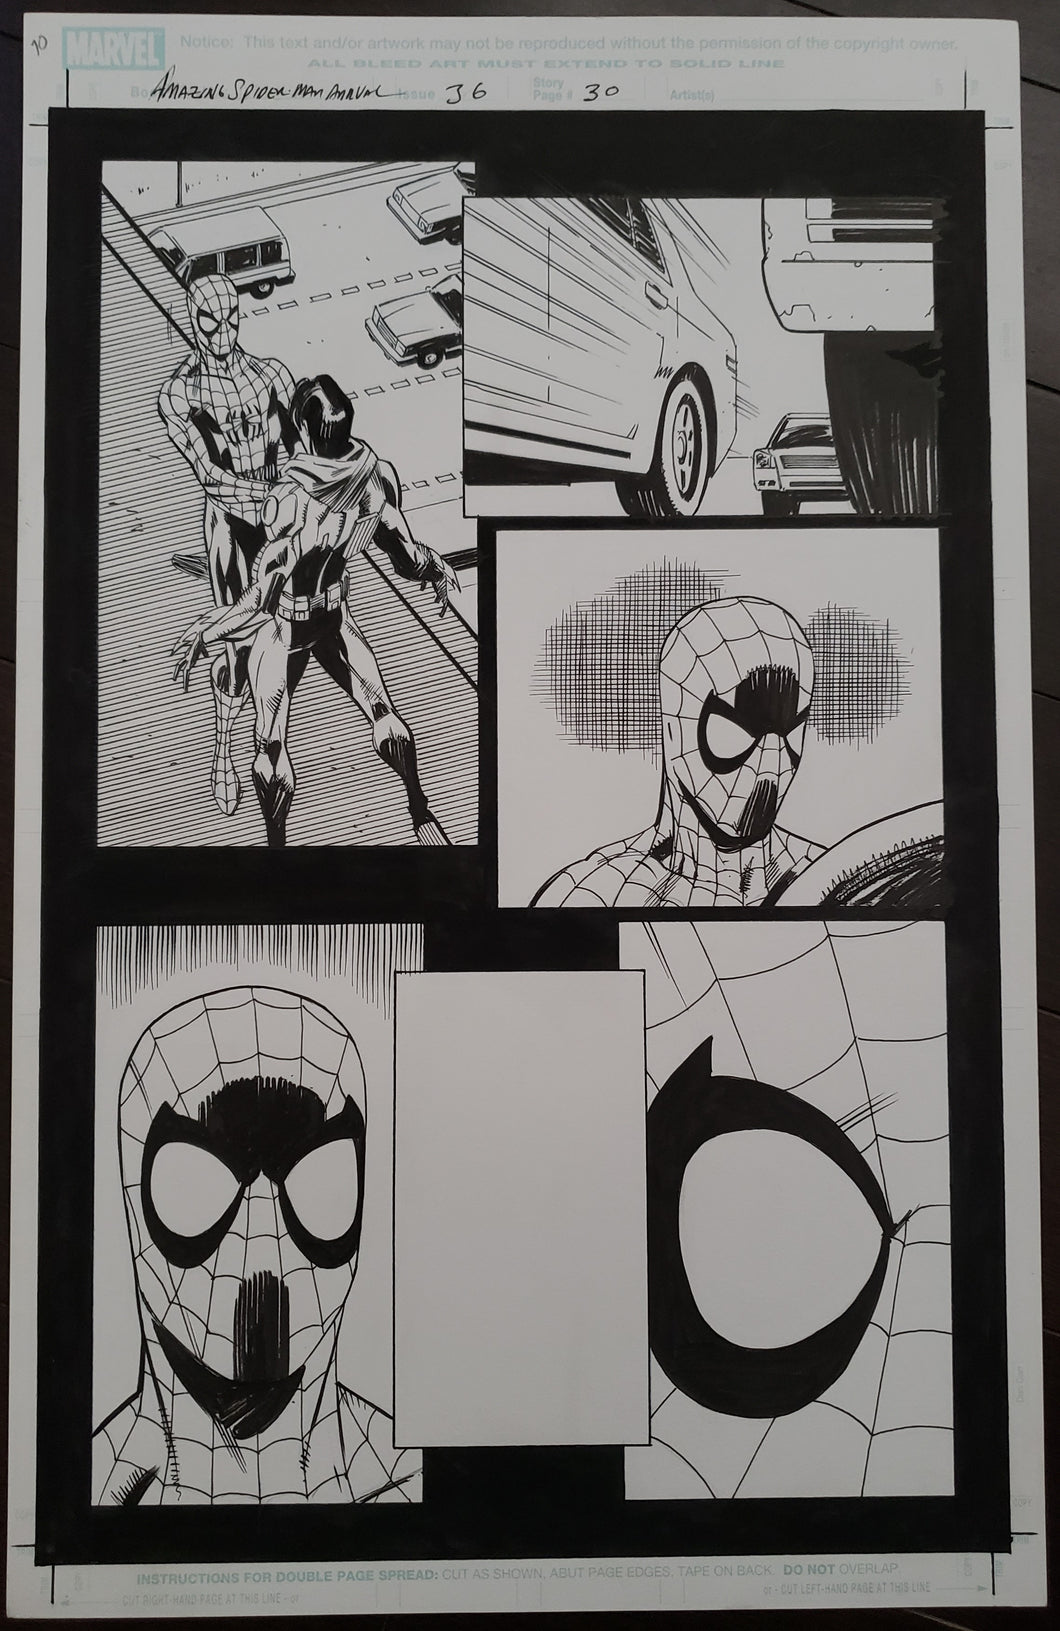 Amazing Spider-Man Annual 36 - Page 30 - Pat Oliffe / Andy Lanning - FIRST APPEARANCE!!